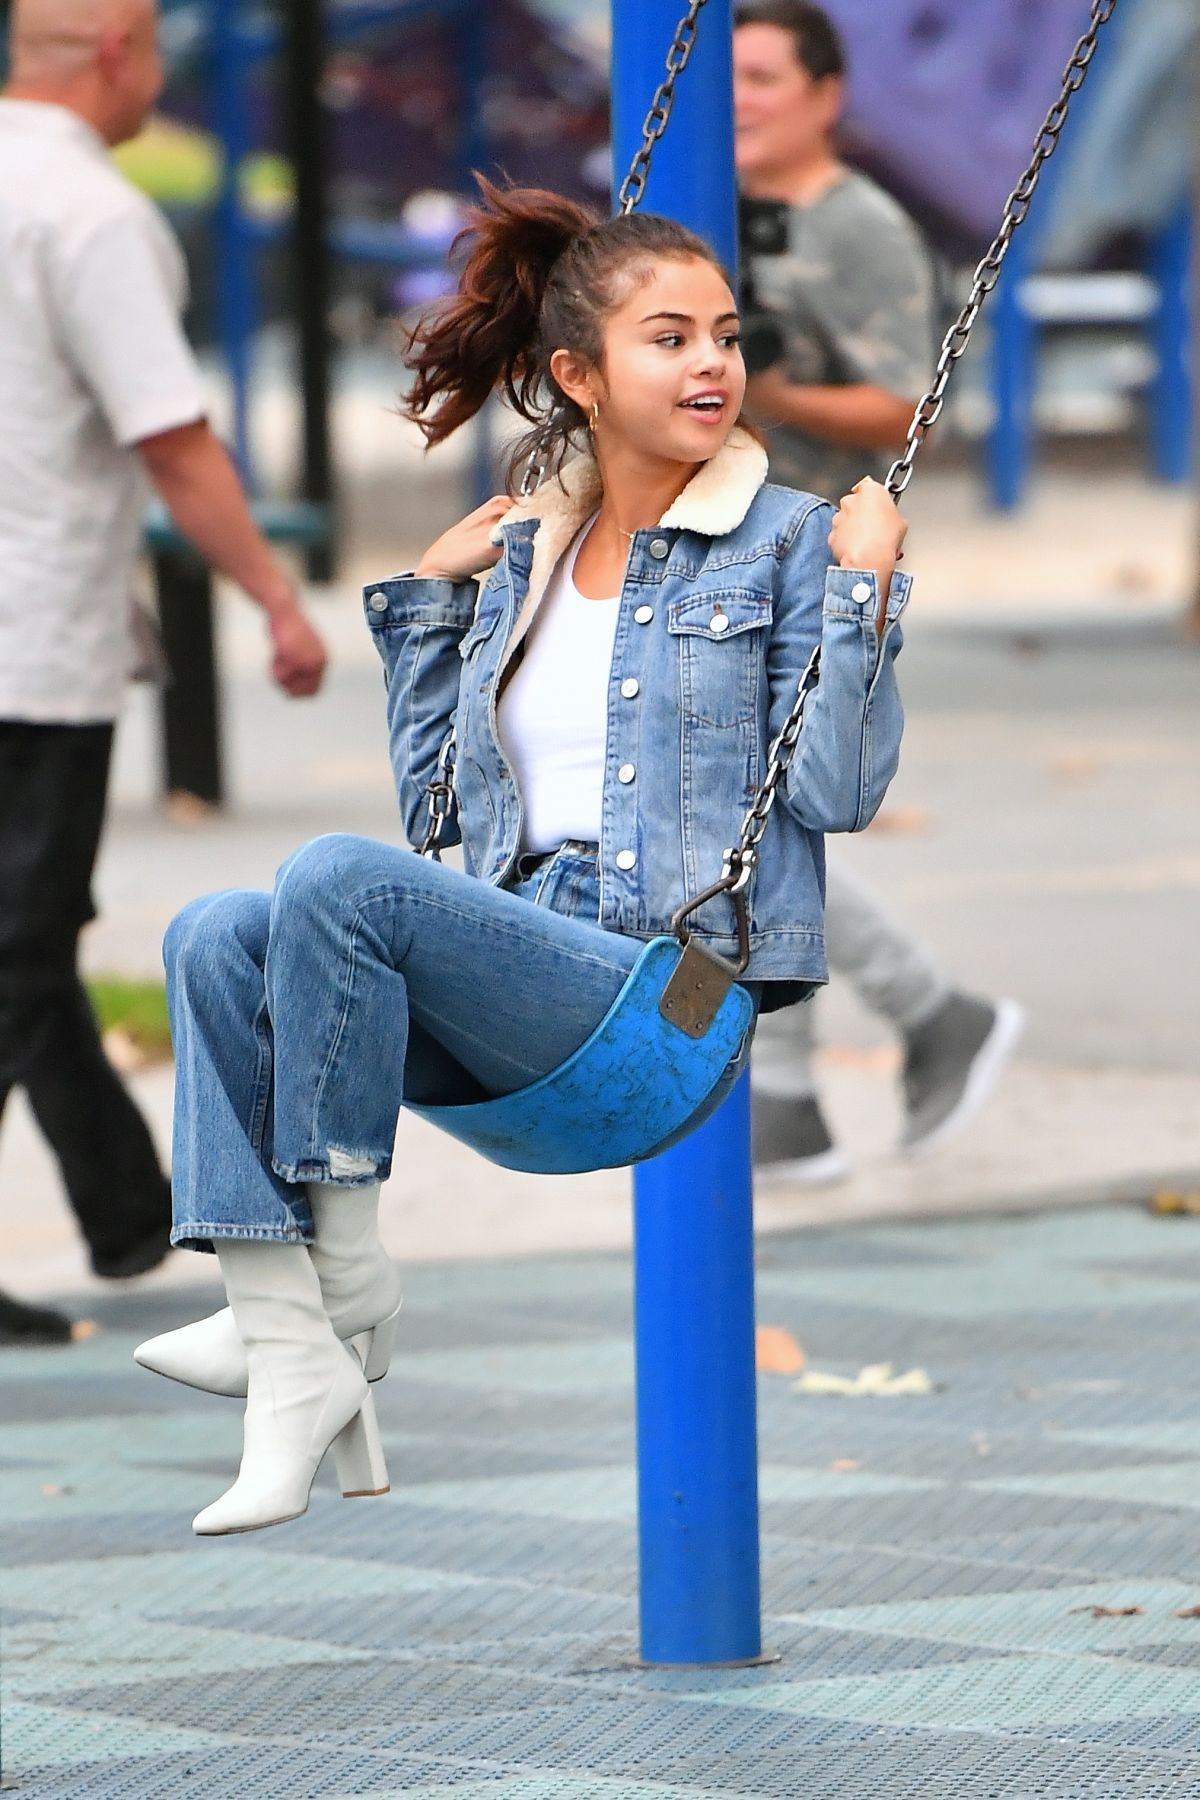 selena gomez in jeans at a park in burbank 11022017